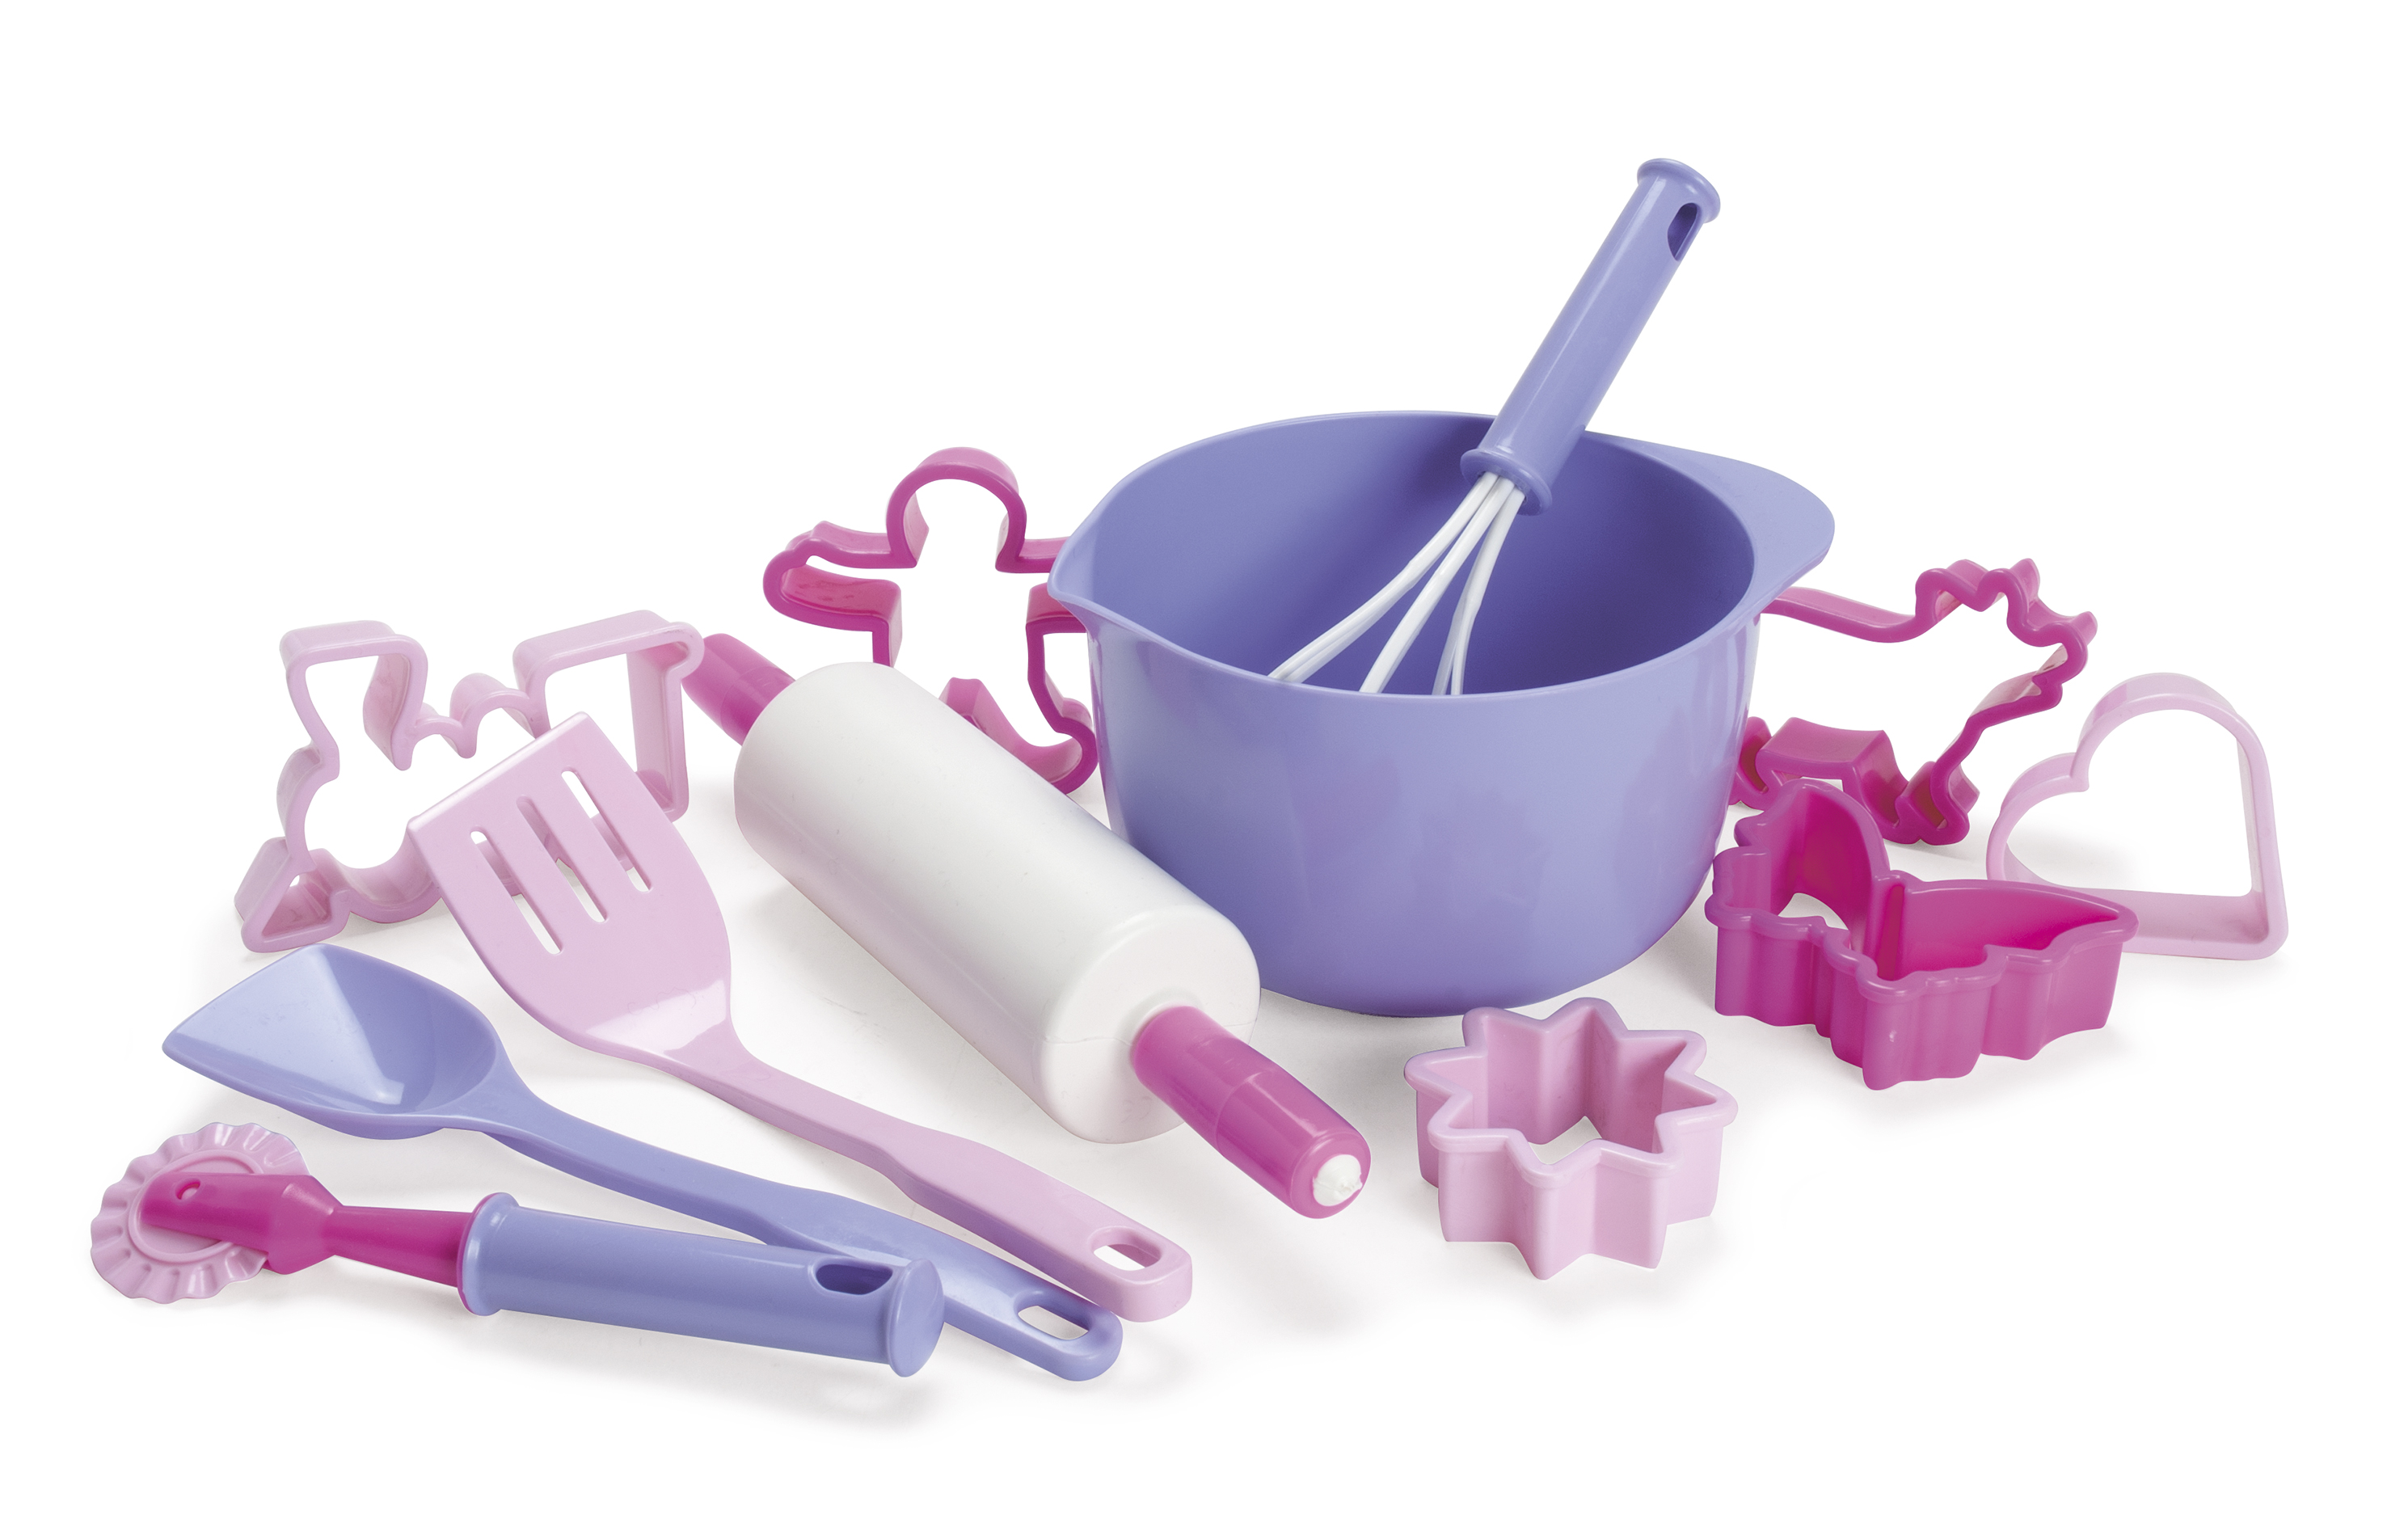 Dantoy - For My Little Princess – Baking set (4399)